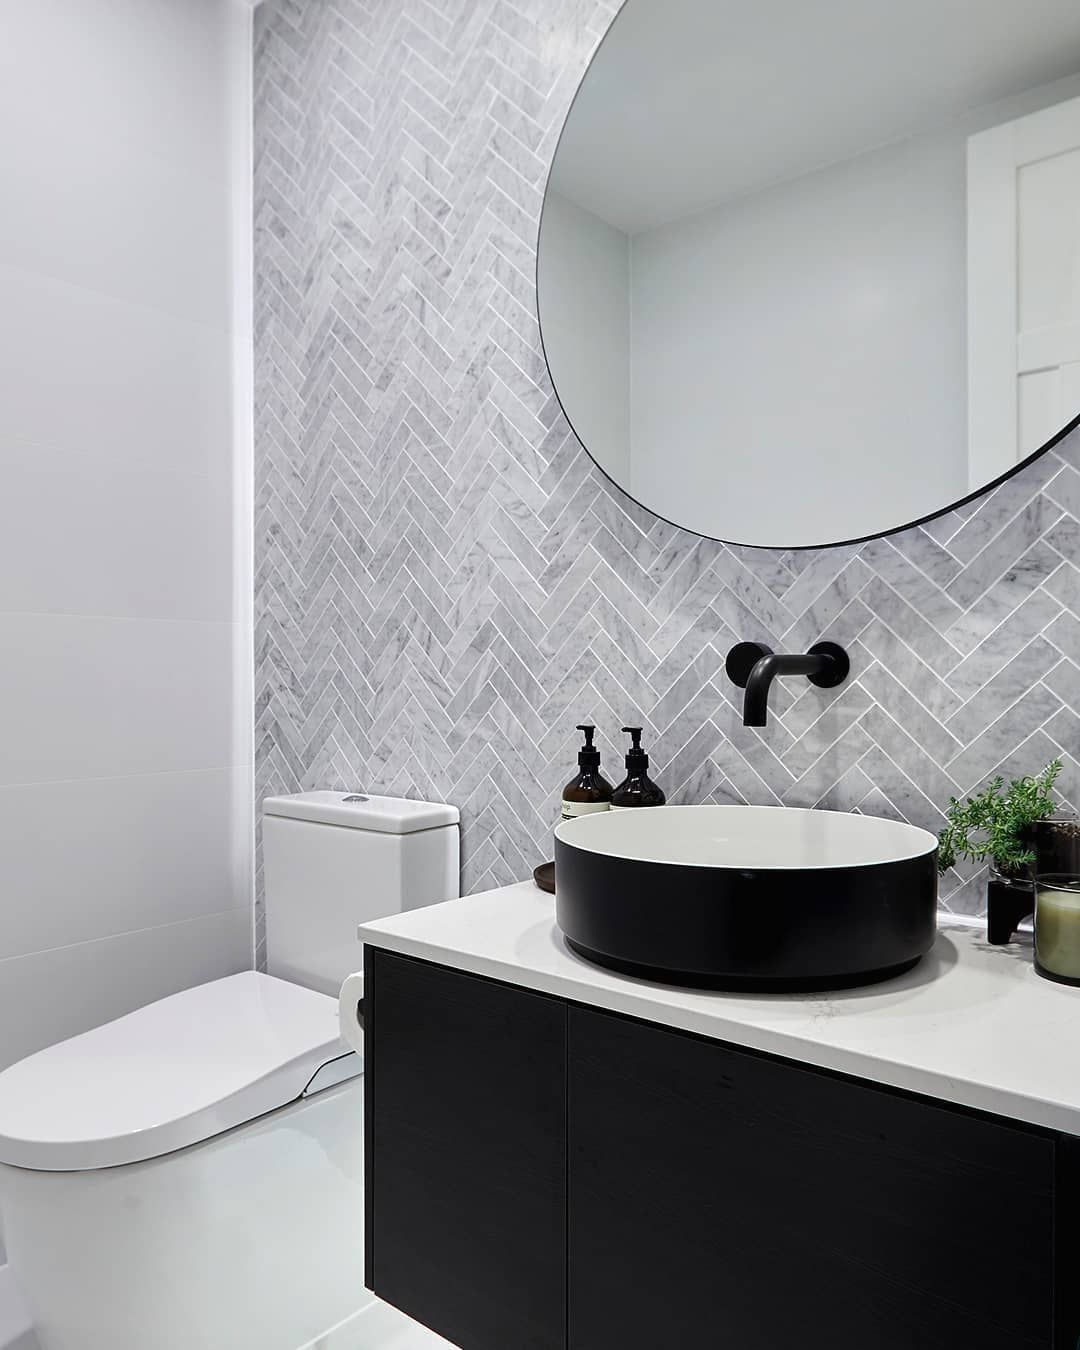 Reece Bathrooms On Instagram Kicking Off The Weekend With Smart Style Looking Back At Kerrieandspence S In 2020 Reece Bathroom Bathroom Design Bathroom Inspiration